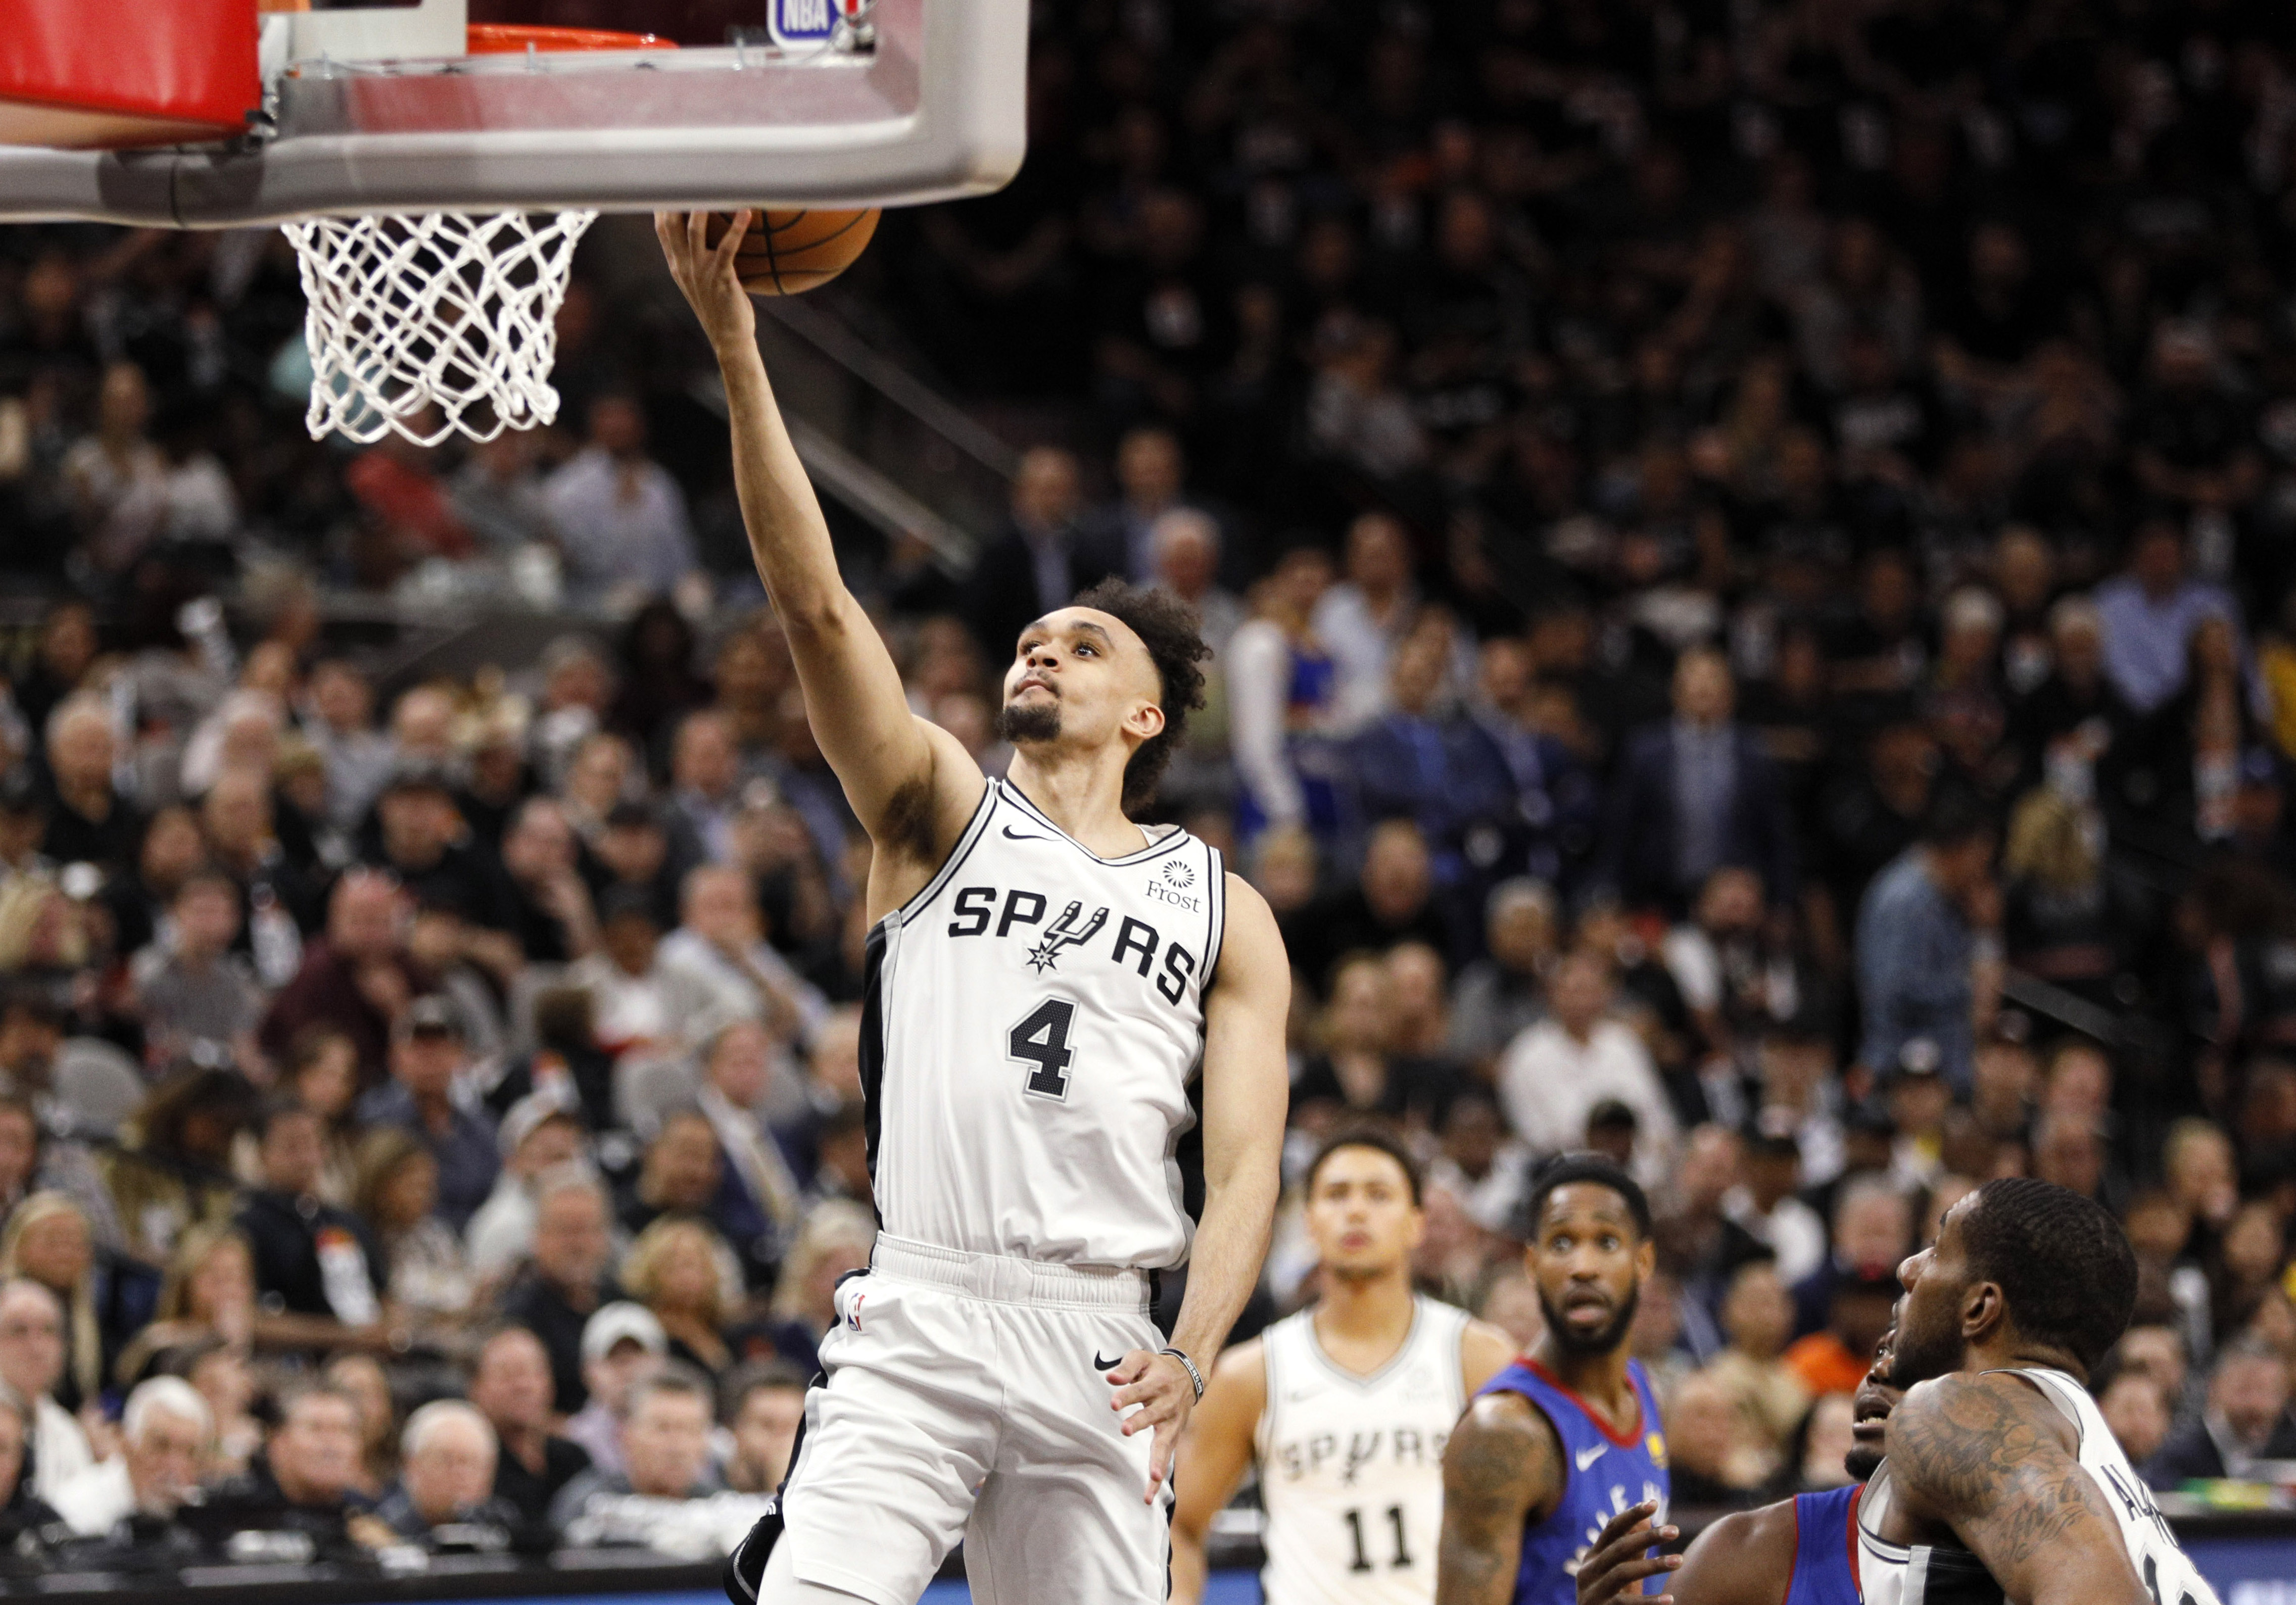 NBA Playoffs 2019: 'How are the Spurs doing this', we ask for the 700th time